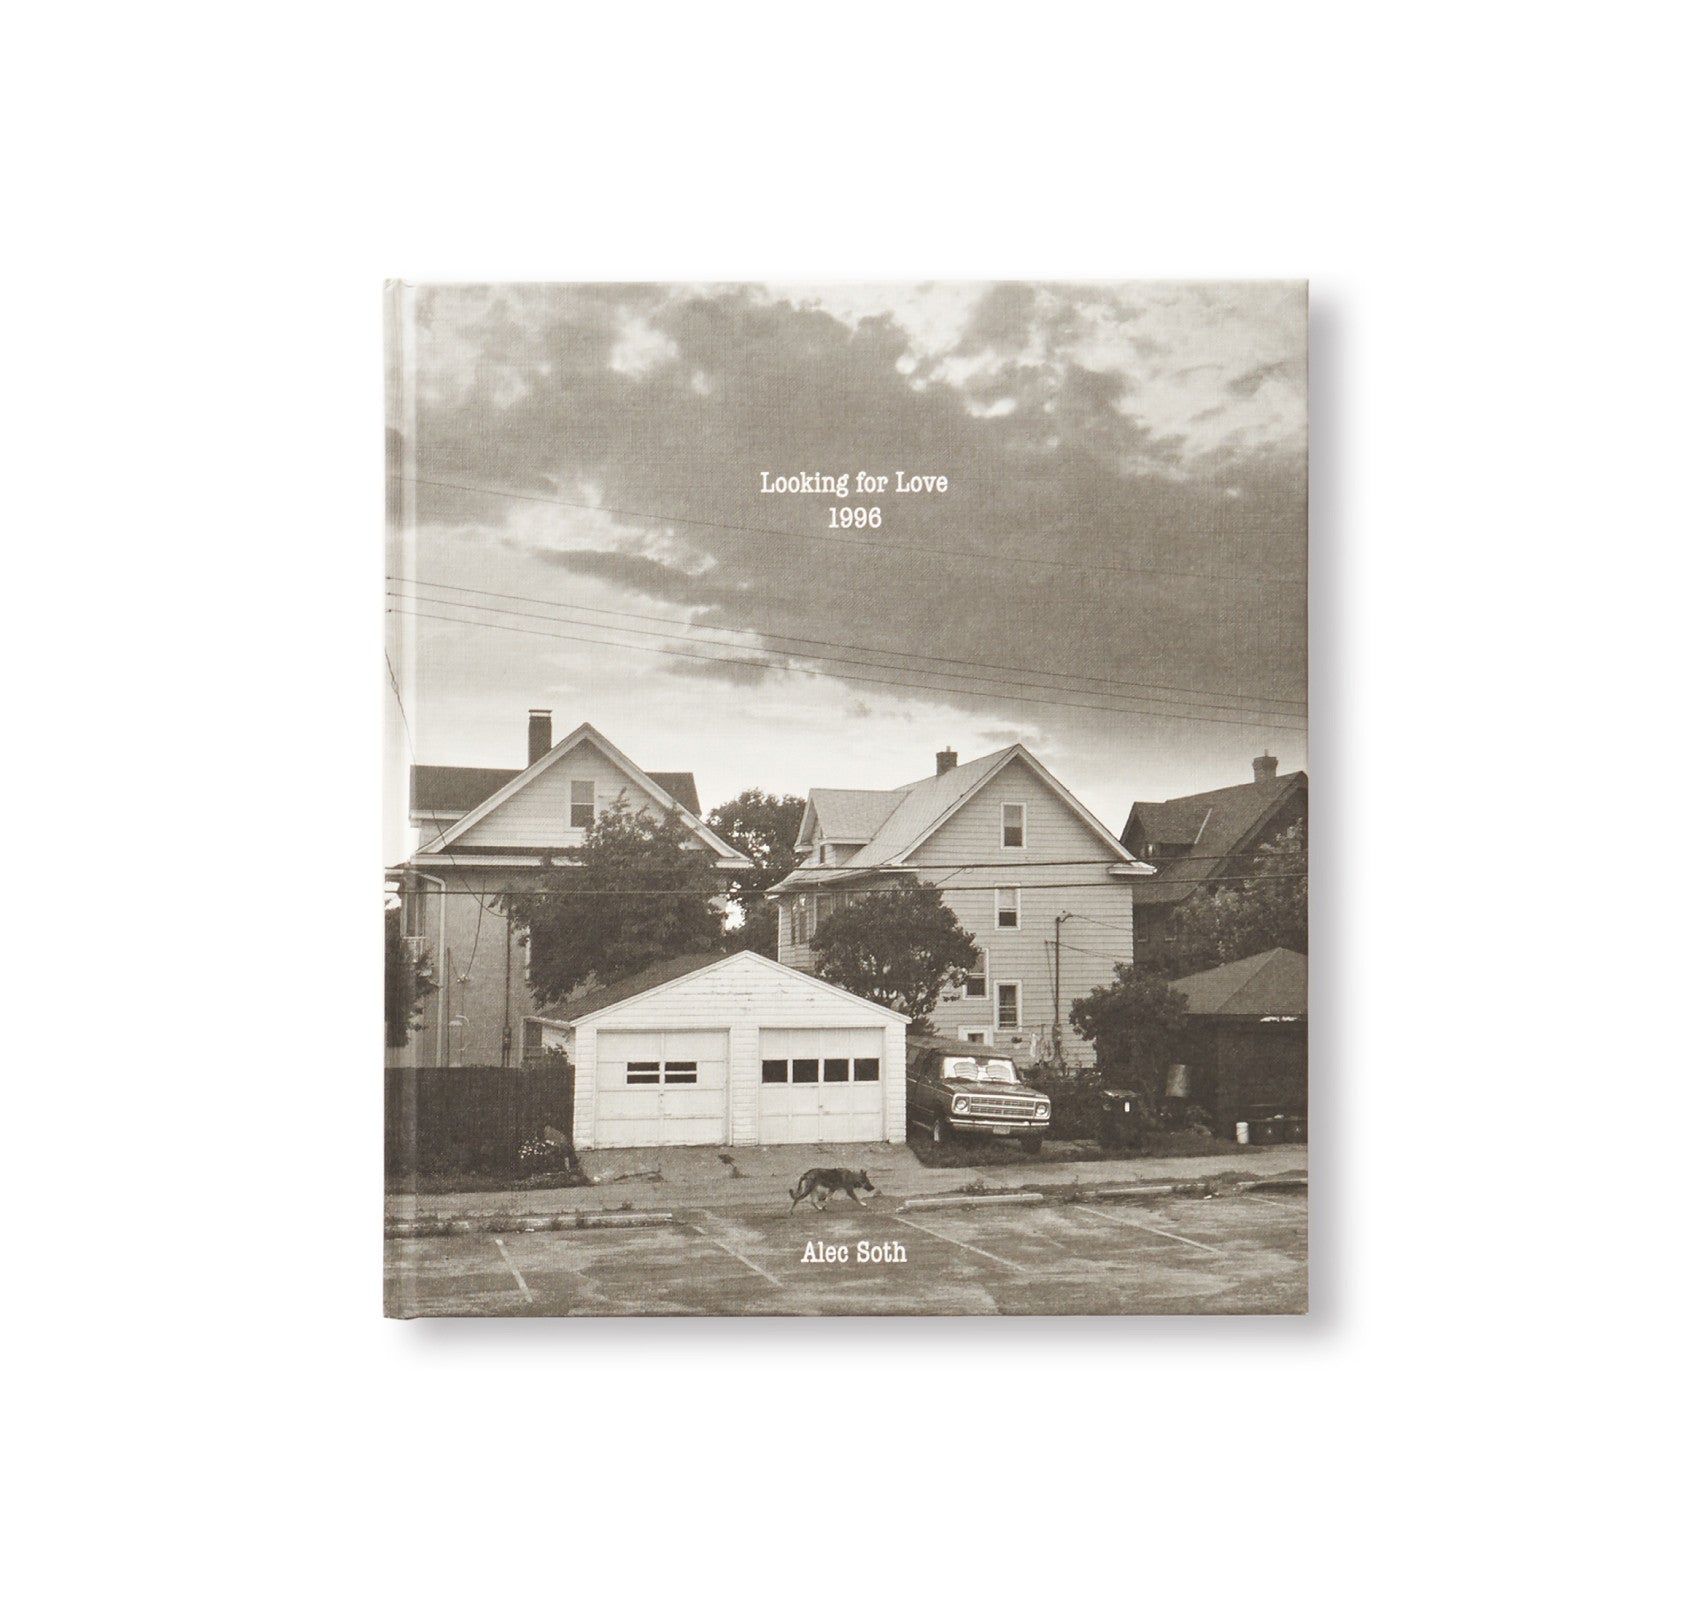 LOOKING FOR LOVE, 1996 by Alec Soth [SPECIAL EDITION]